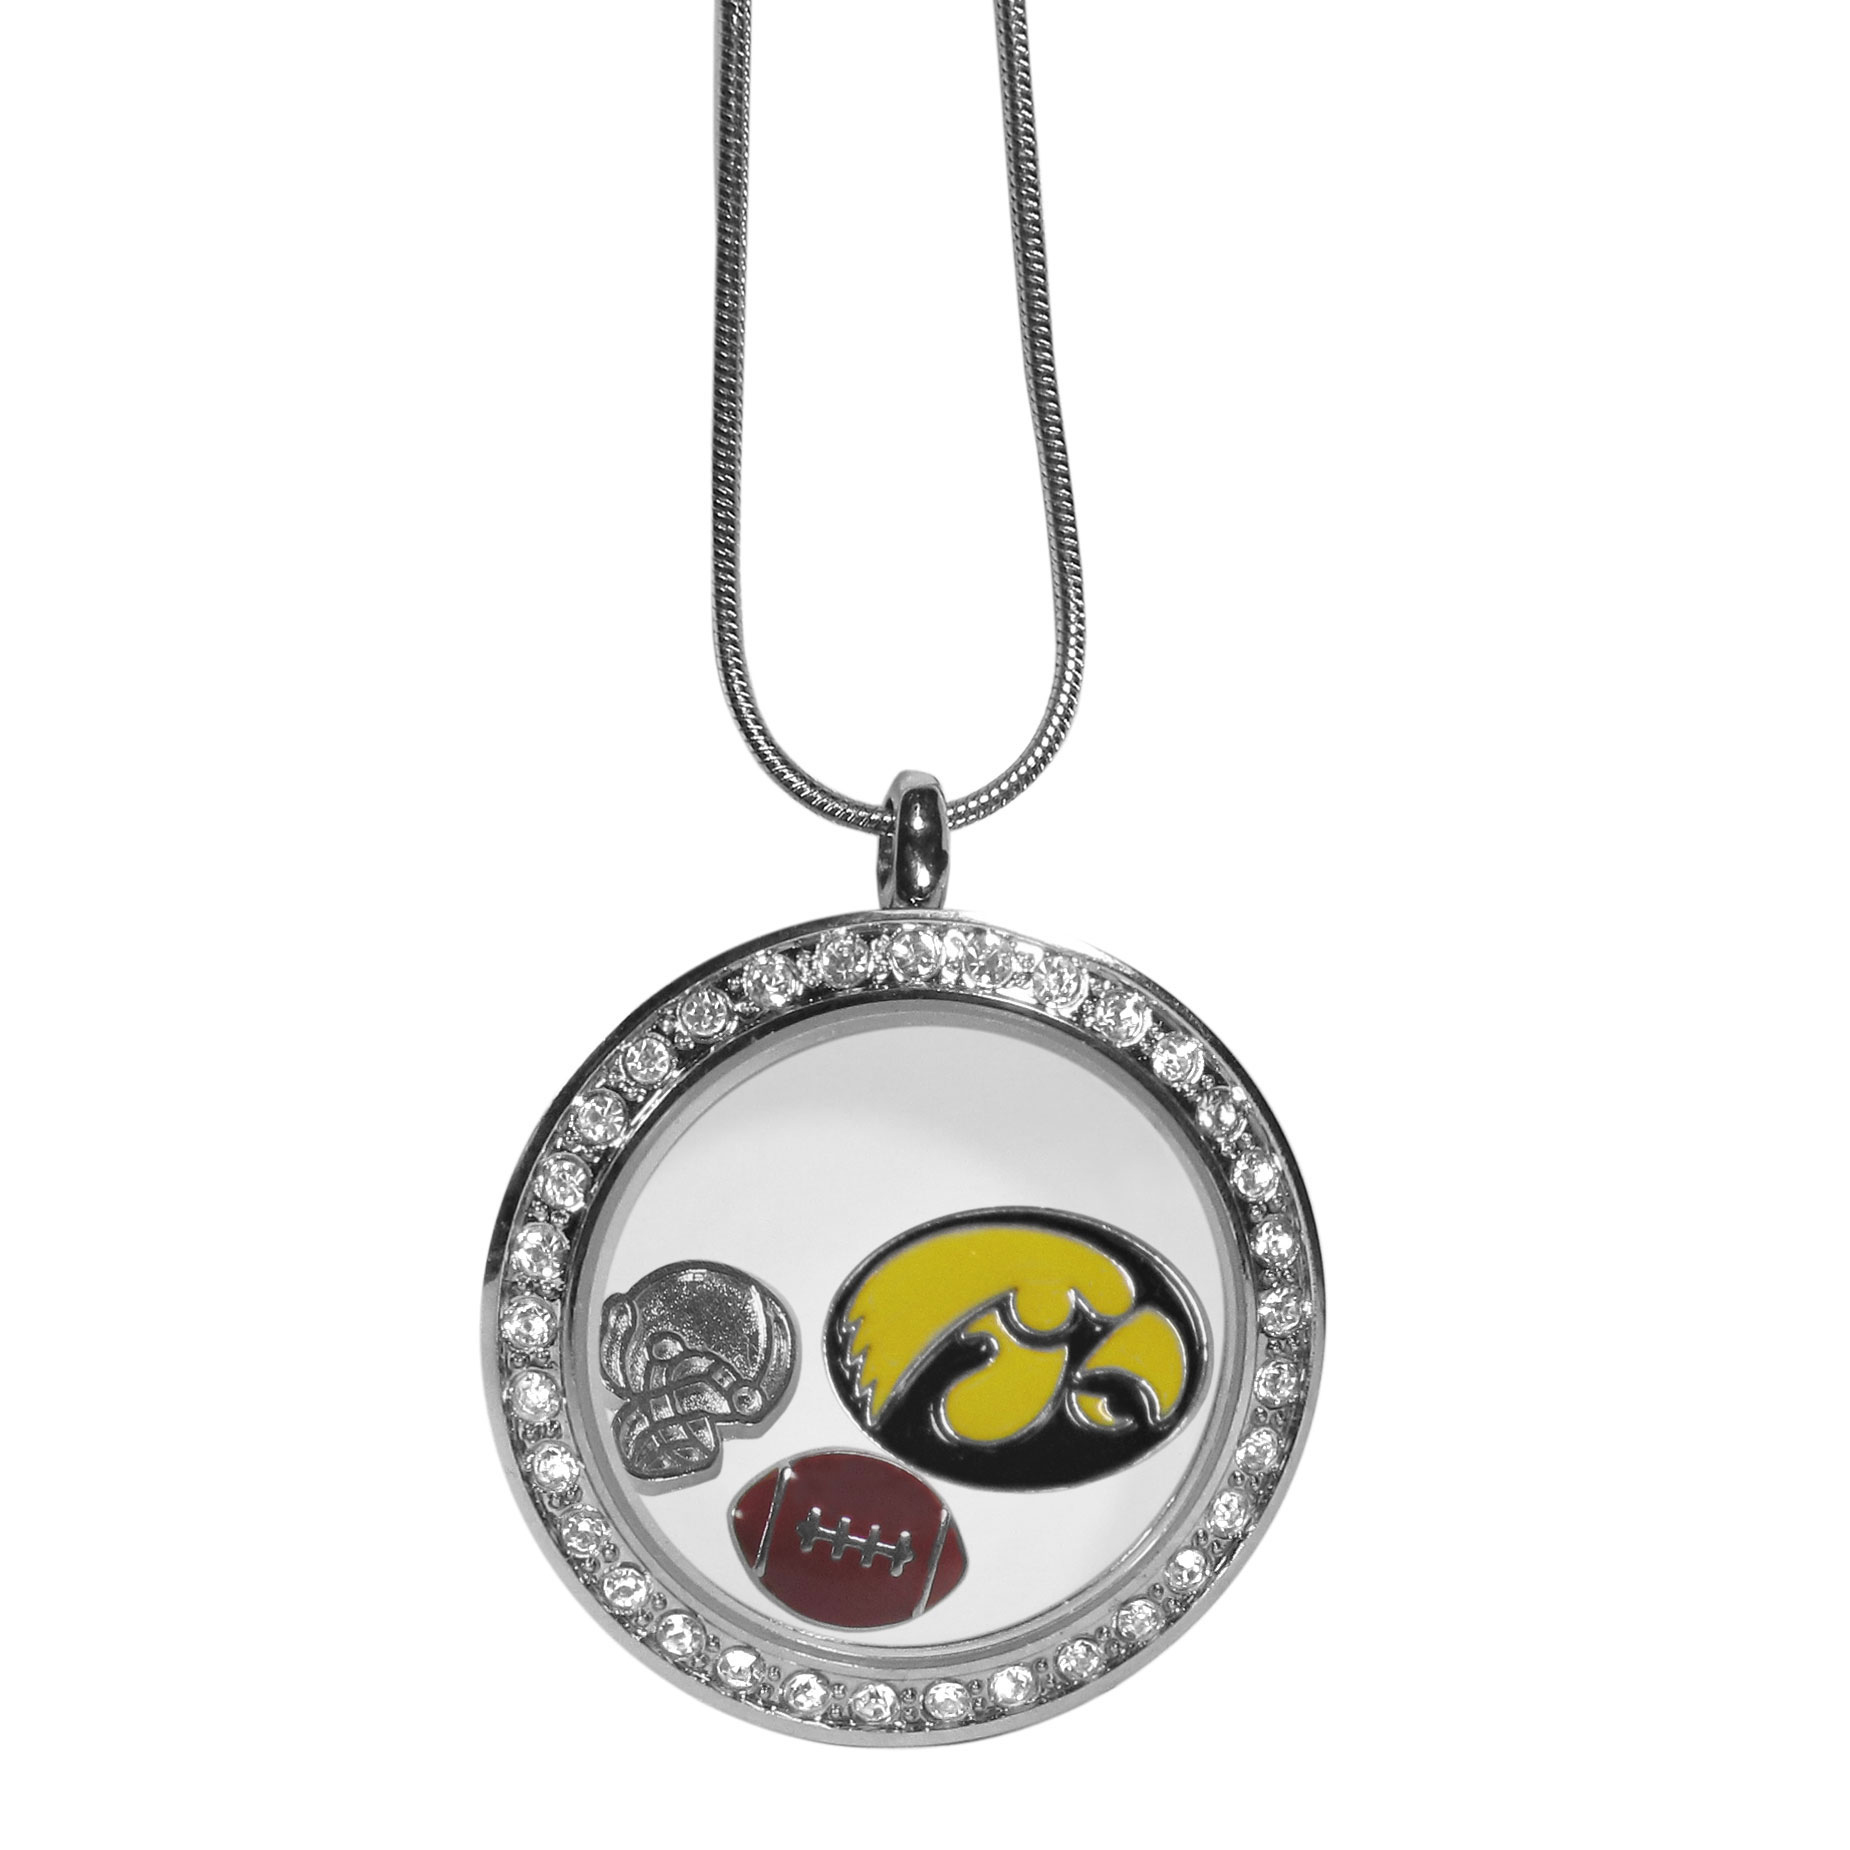 Iowa Hawkeyes Locket Necklace - We have taken the classic floating charm locket and combined with licensed sports charms to create a must have fan necklace. The necklace comes with 3 charms; 1 Iowa Hawkeyes charm, one football charm and one helmet charm. The charms float in a beautiful locket that has a strong magnetic closure with a rhinestone border. The locket comes on an 18 inch snake chain with 2 inch extender.